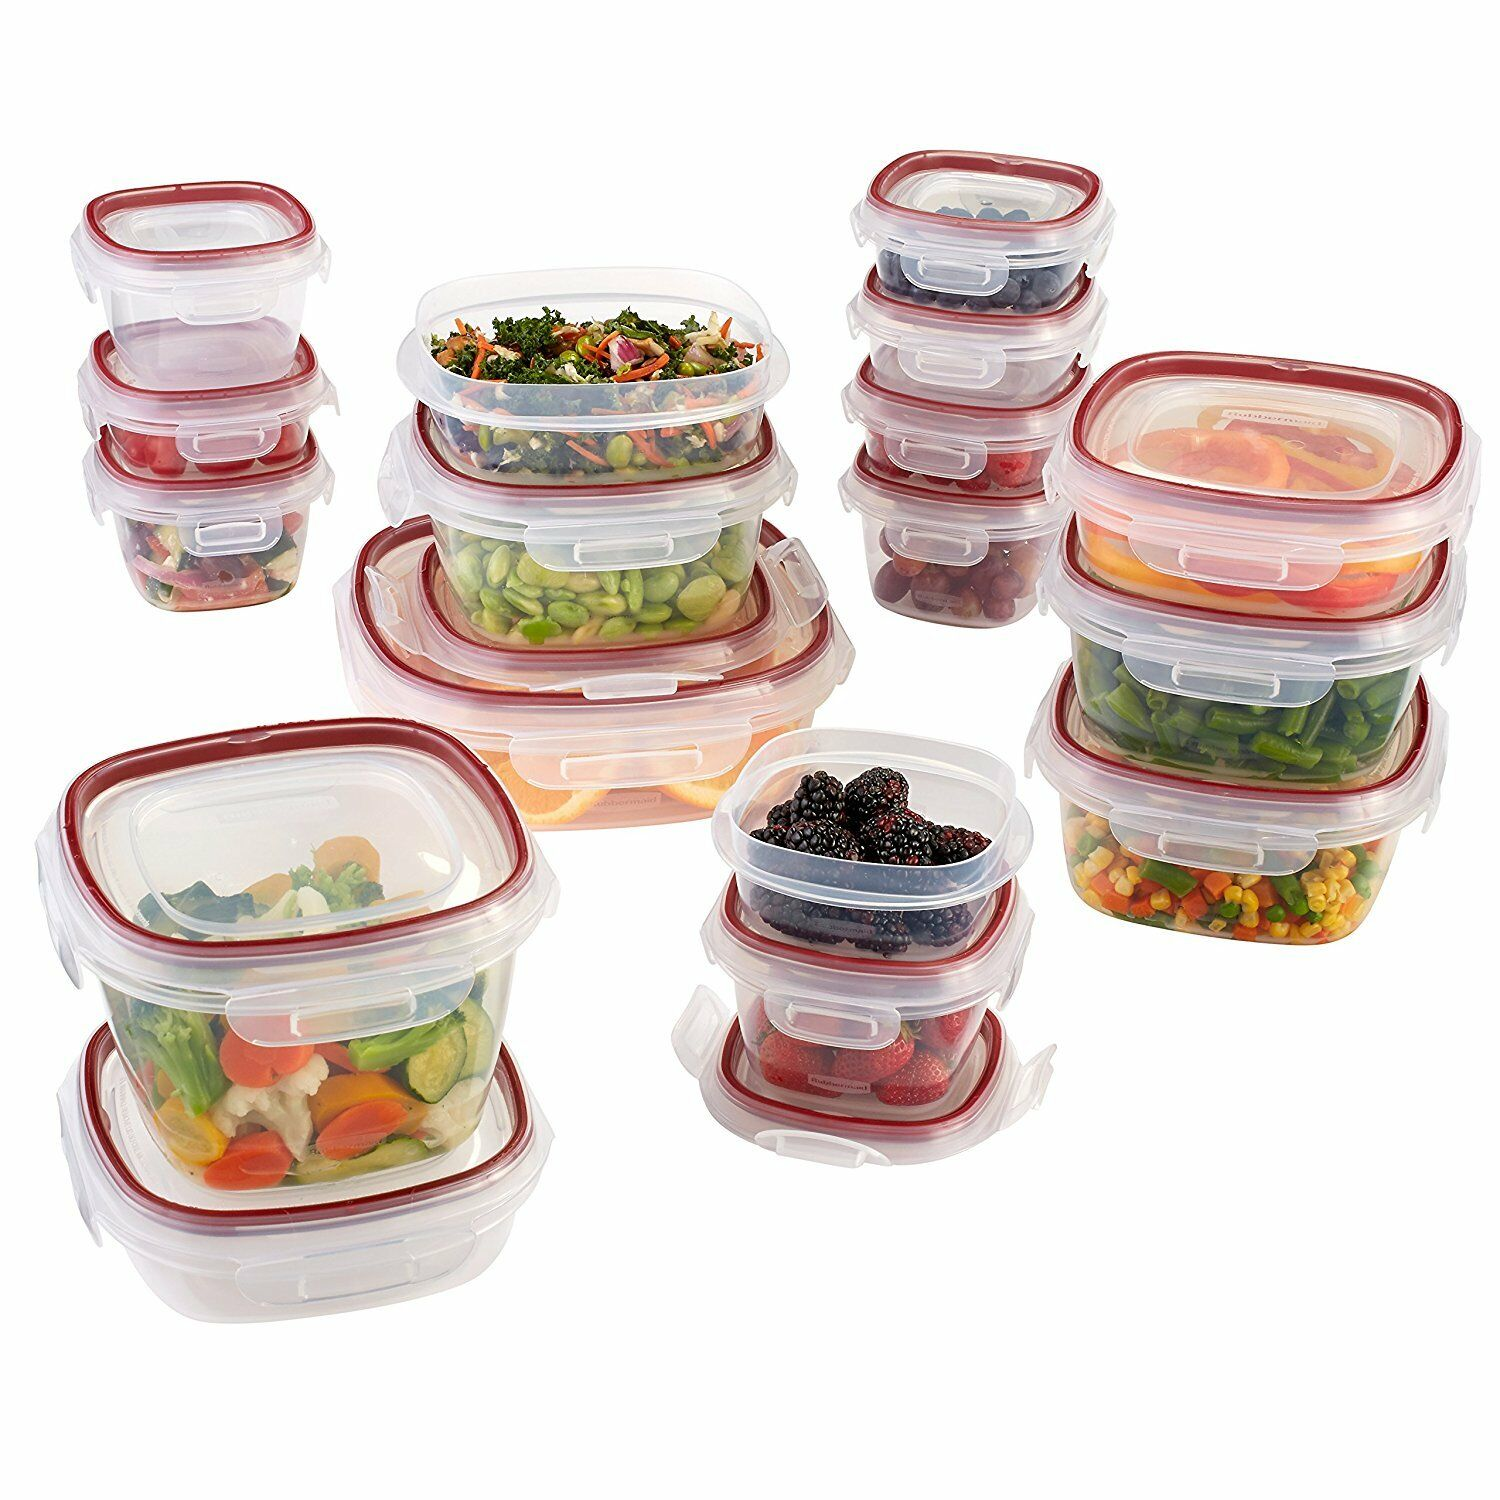 Rubbermaid Easy Find Lock Its Food Storage Containers 5